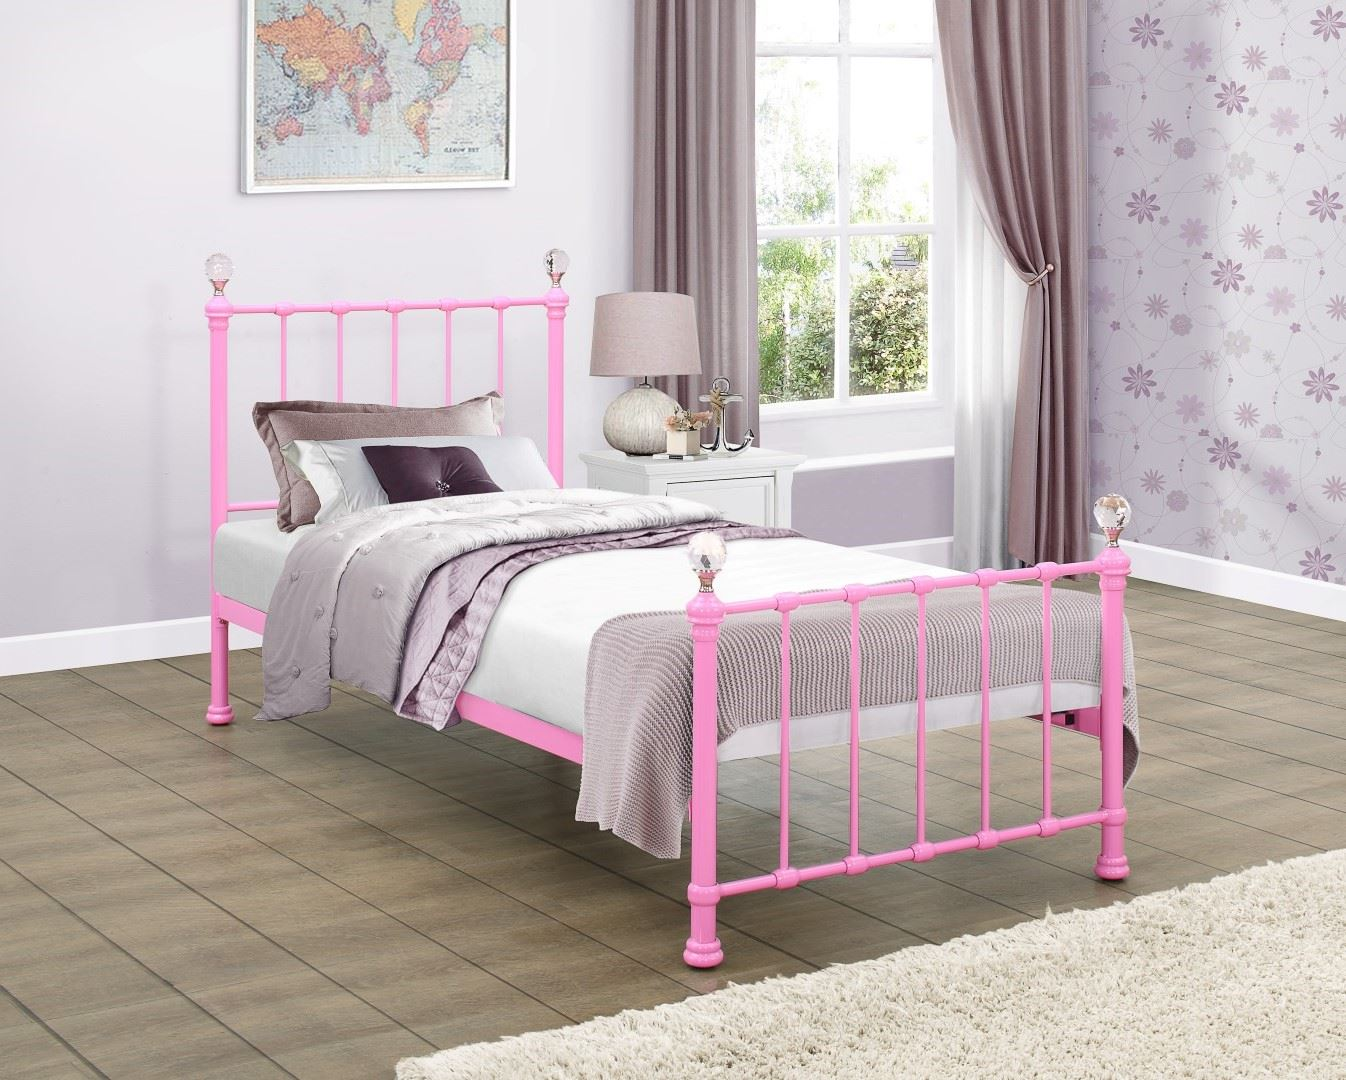 Jessica 90cm 3FT Single Hot Pink Metal Bed Frame Bedstead with ...